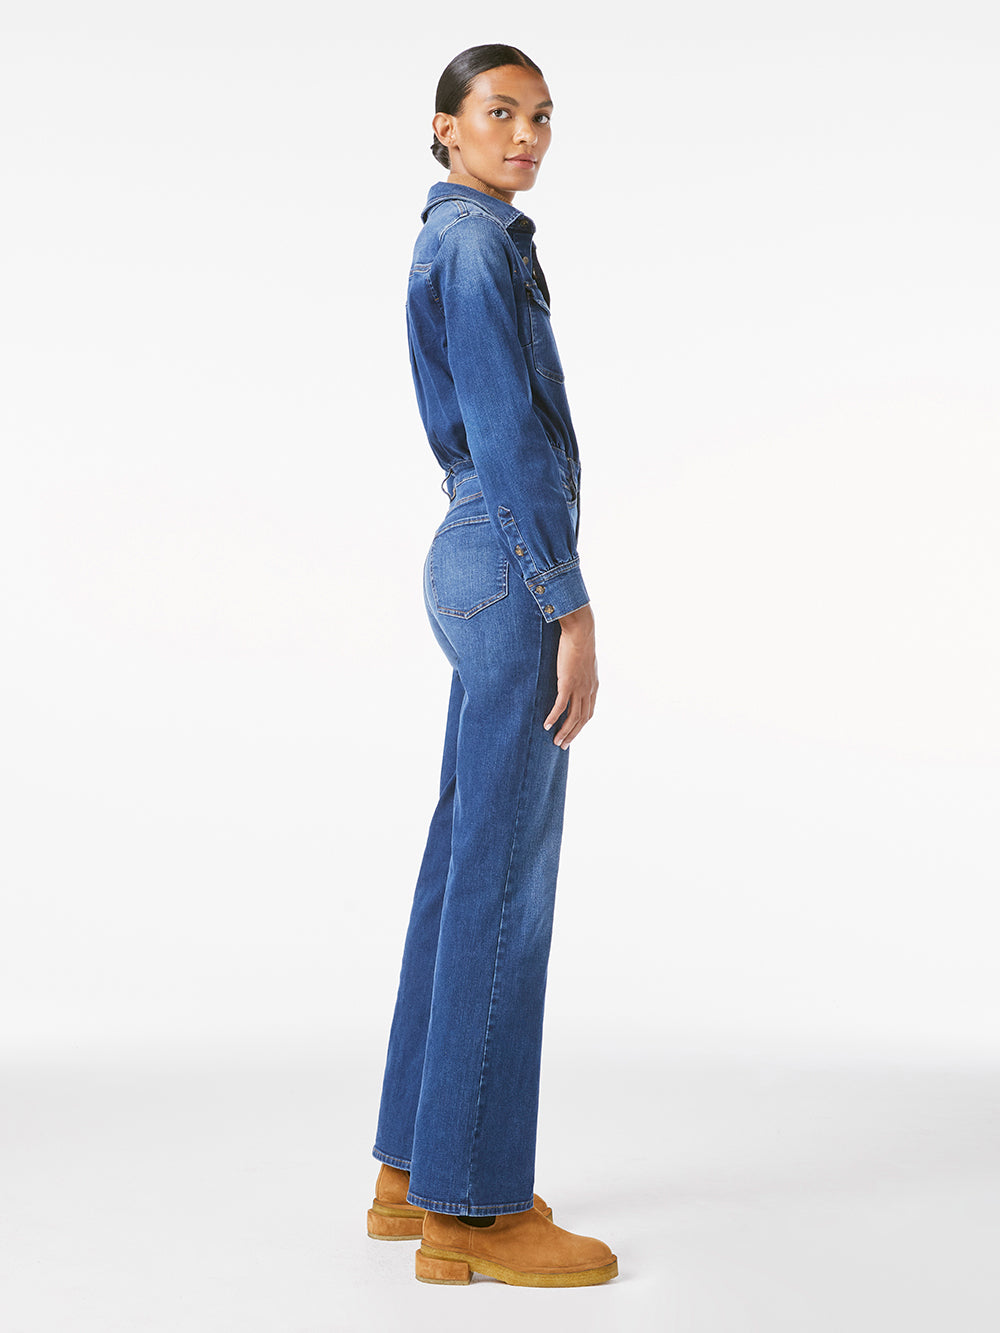 jumpsuit side view